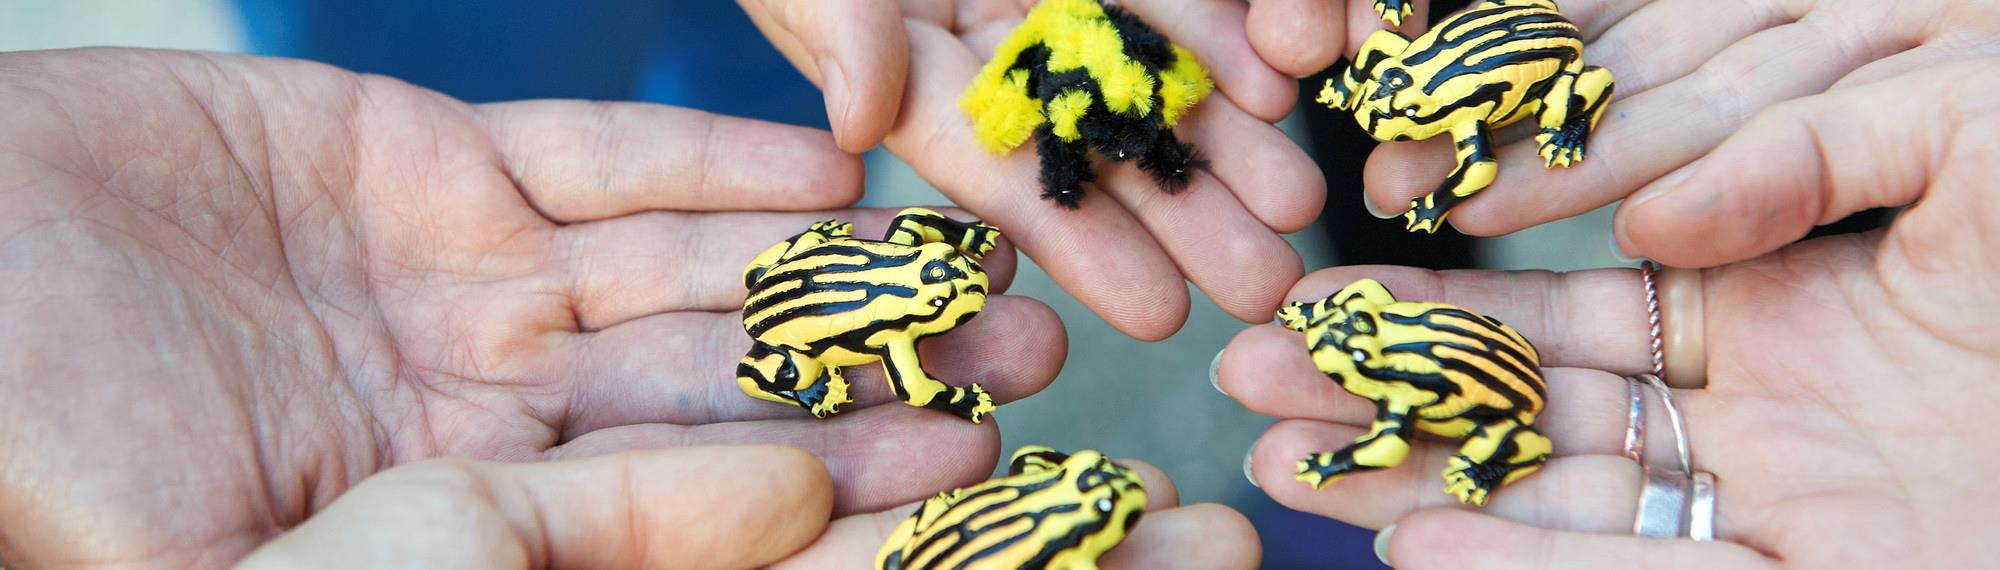 Five hands all holding a toy Corroboree Frog.